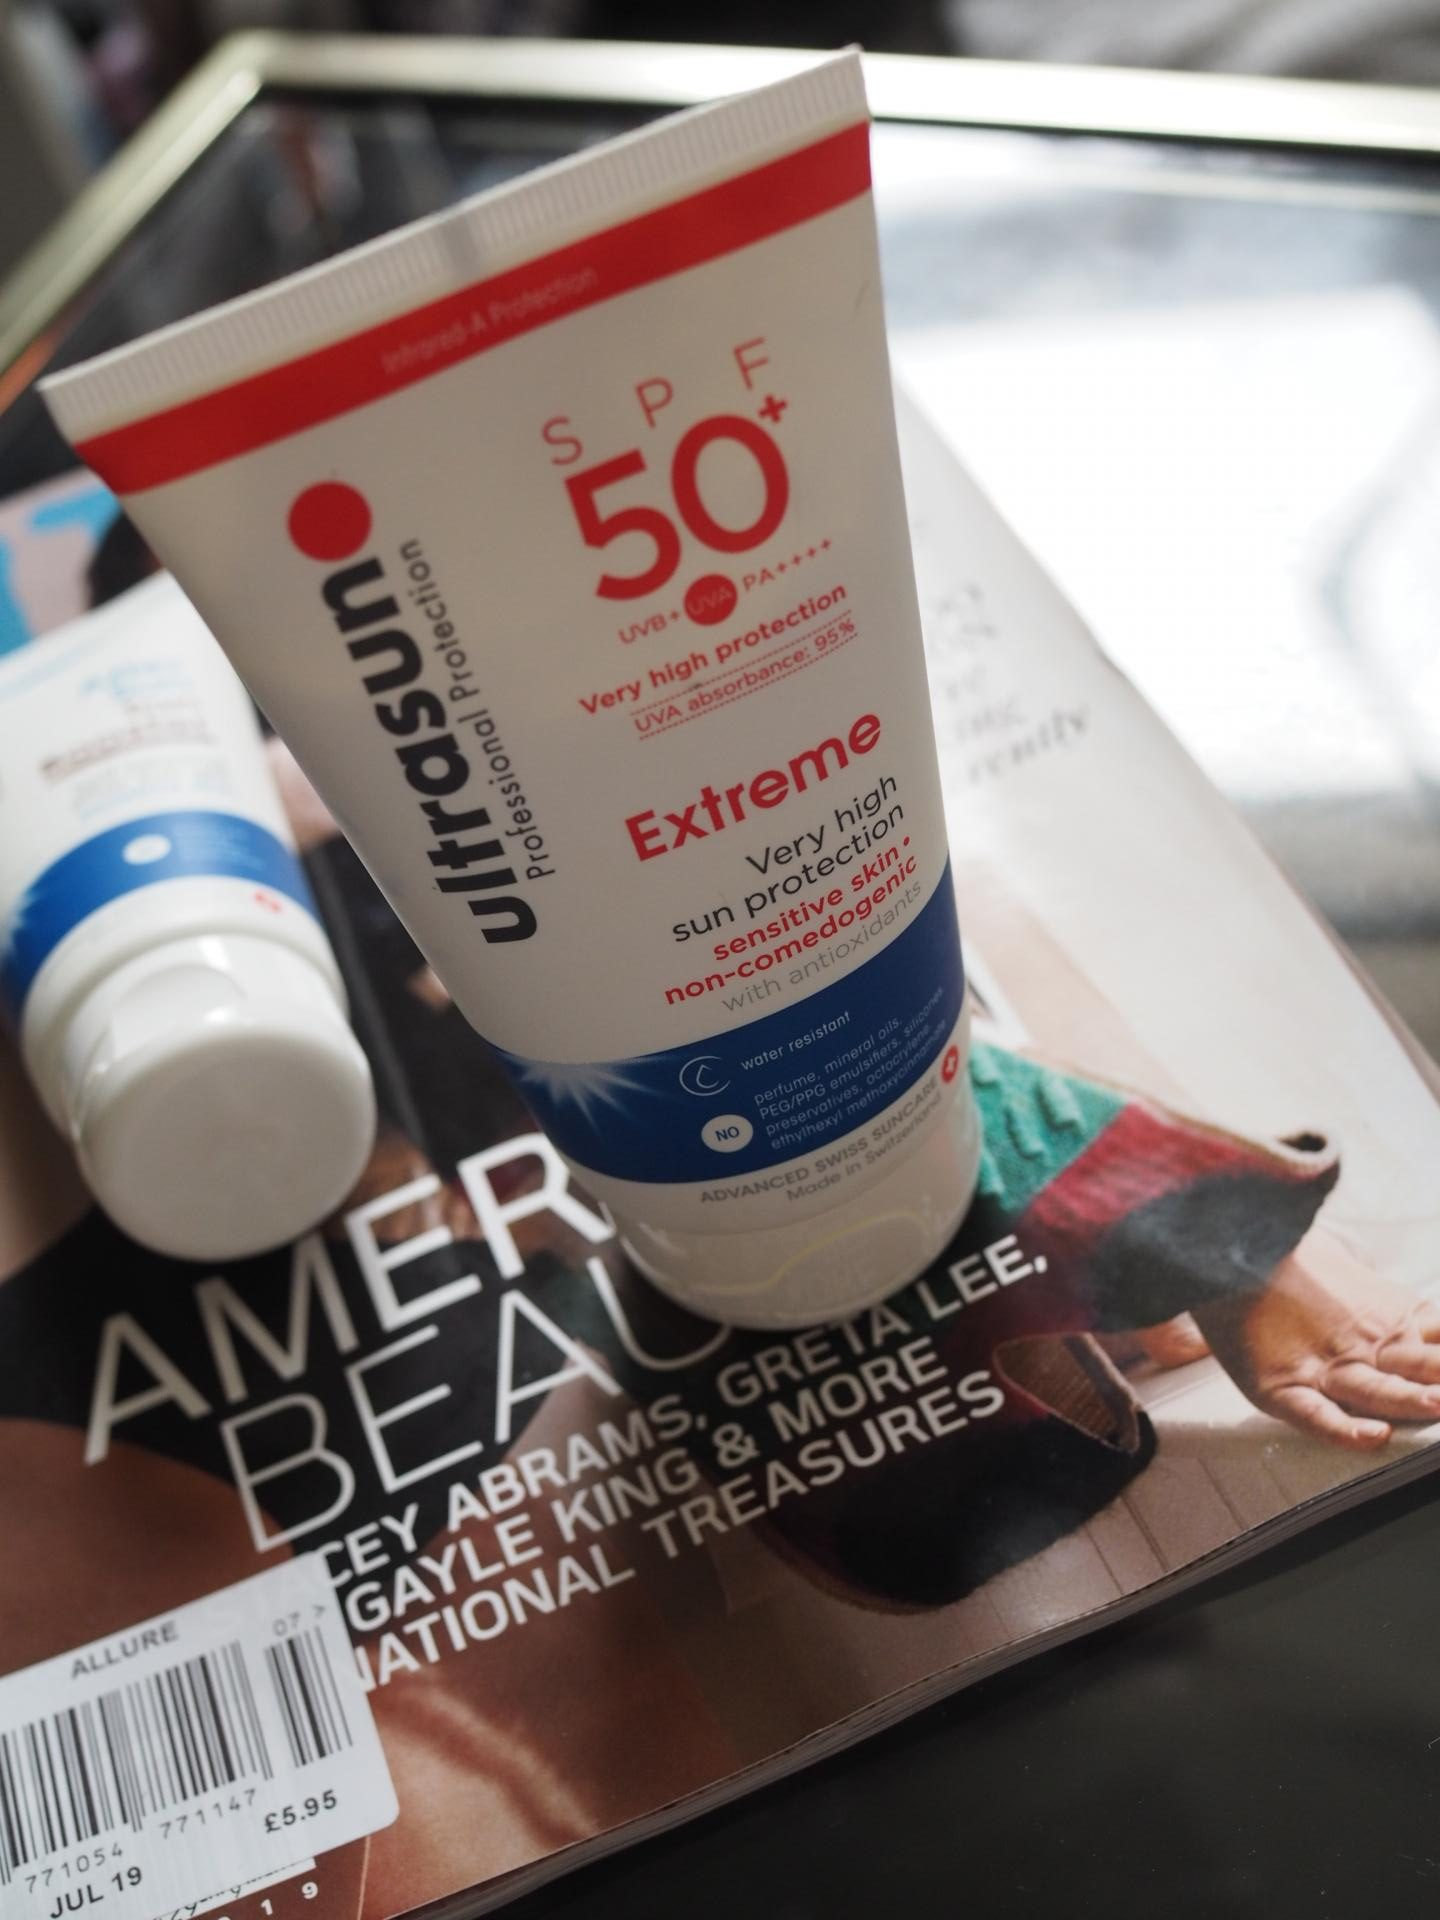 Ultrasun Extreme SPF 50 Sun Protection